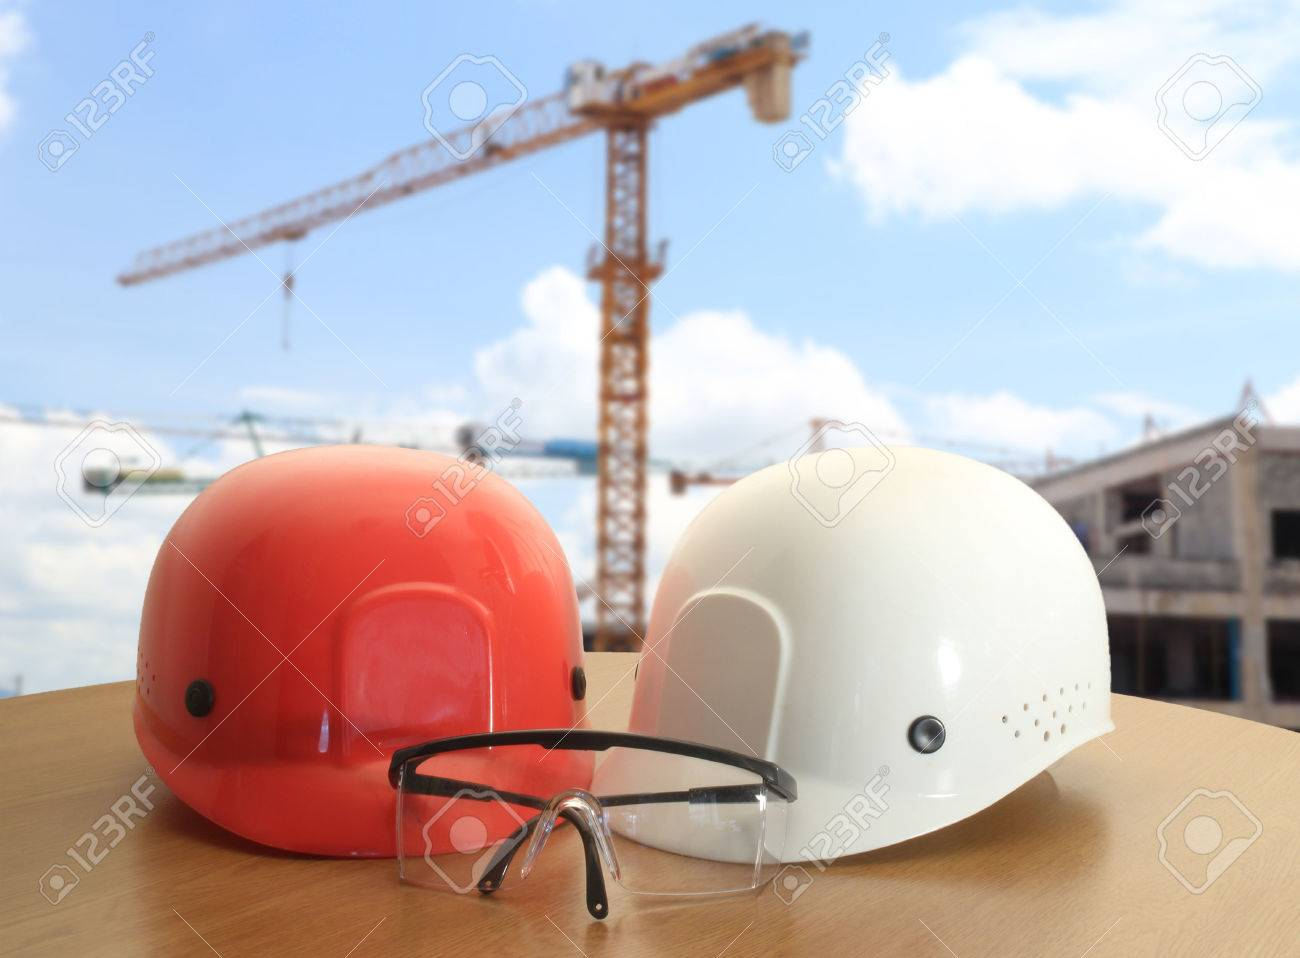 safety helmet on civil engineer working table and work area background - 41334265